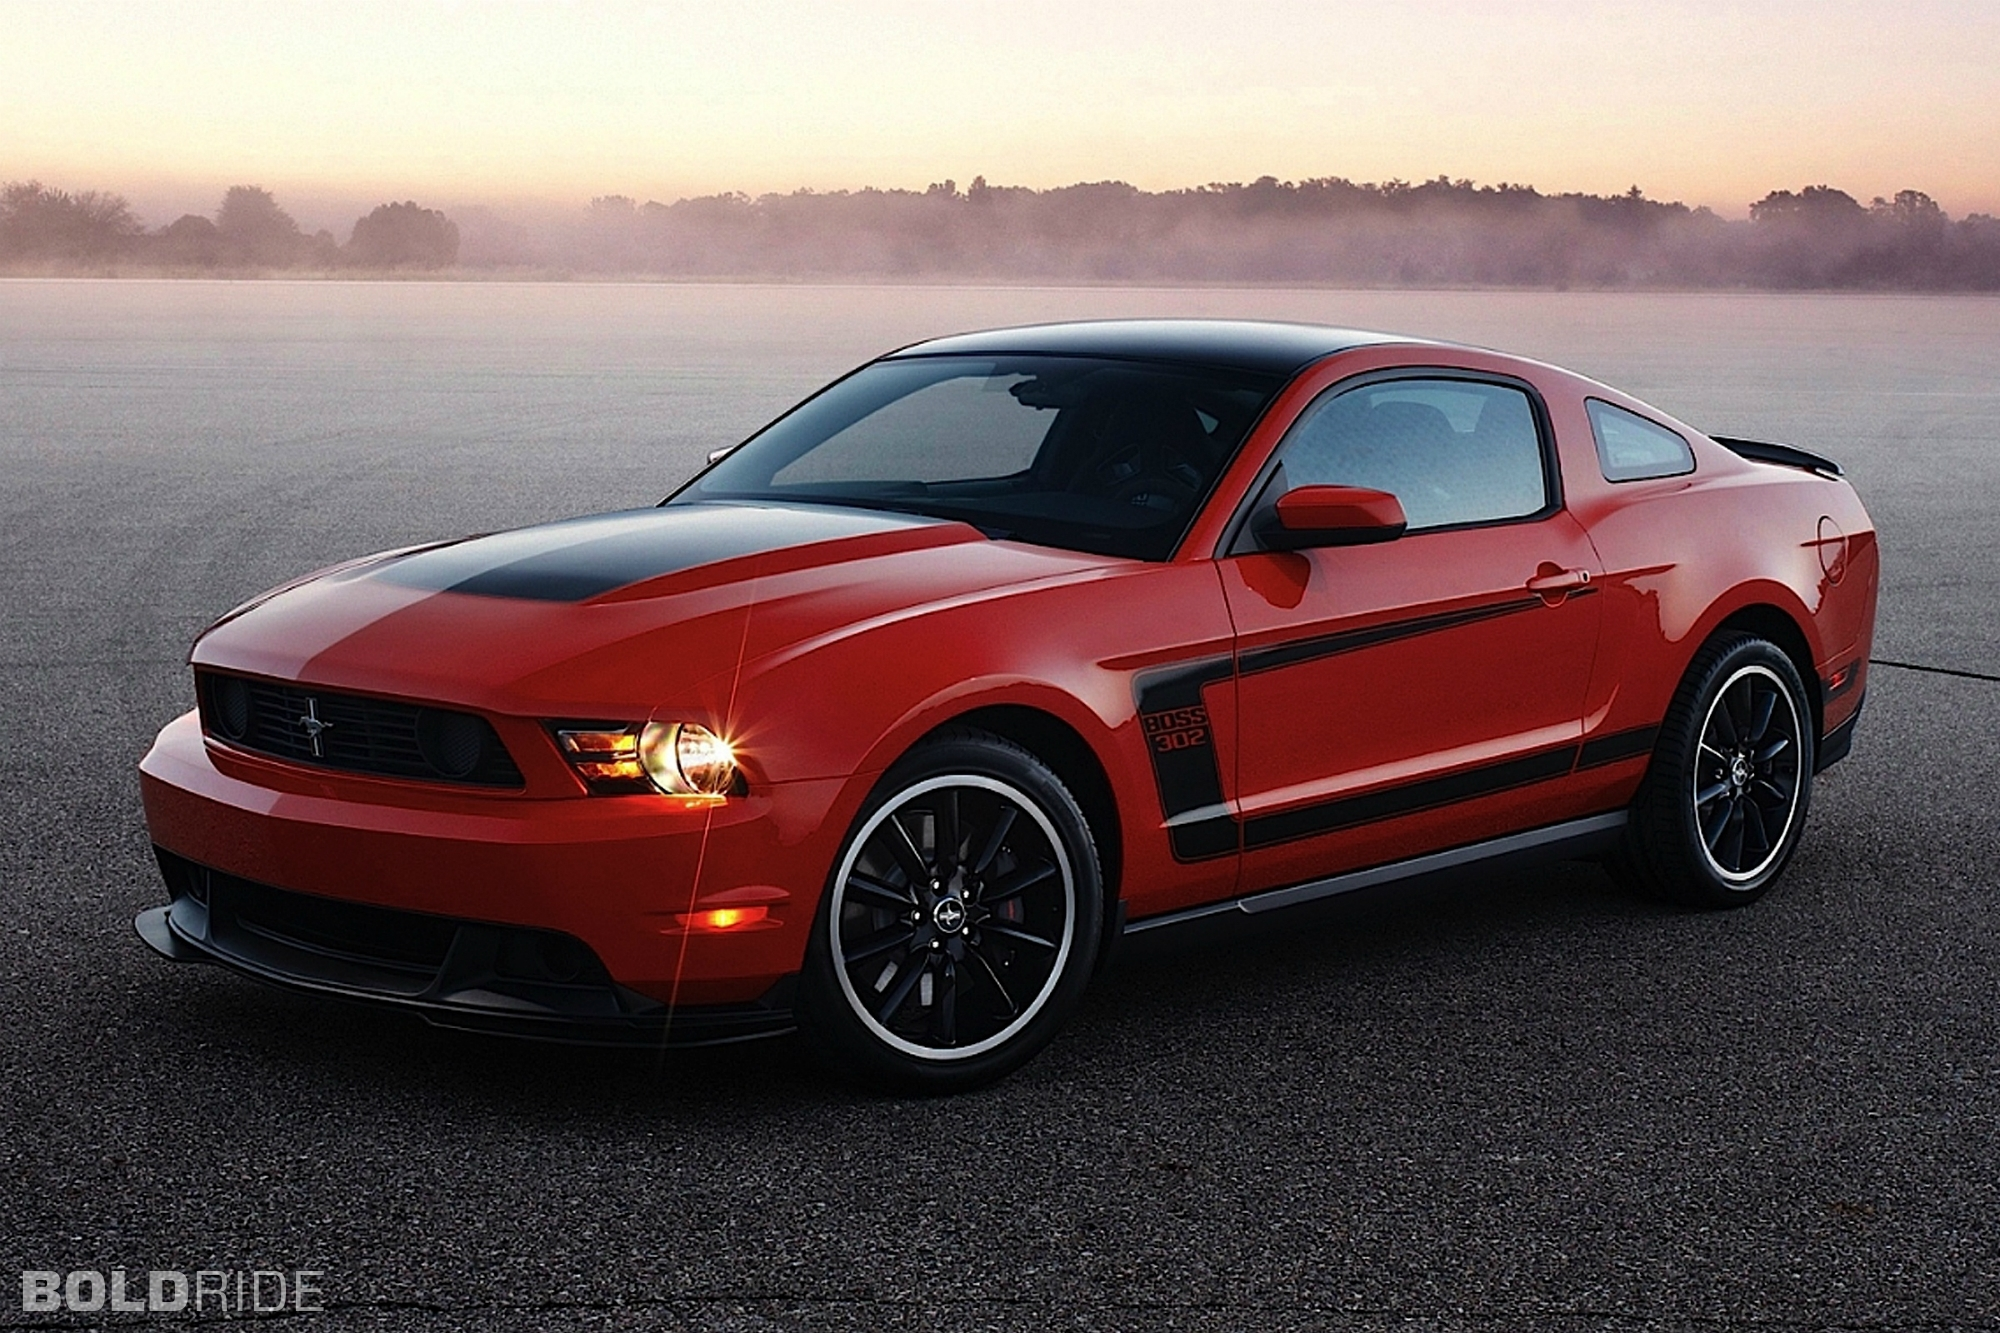 2012 Ford Mustang Boss 302 1600 x 1200